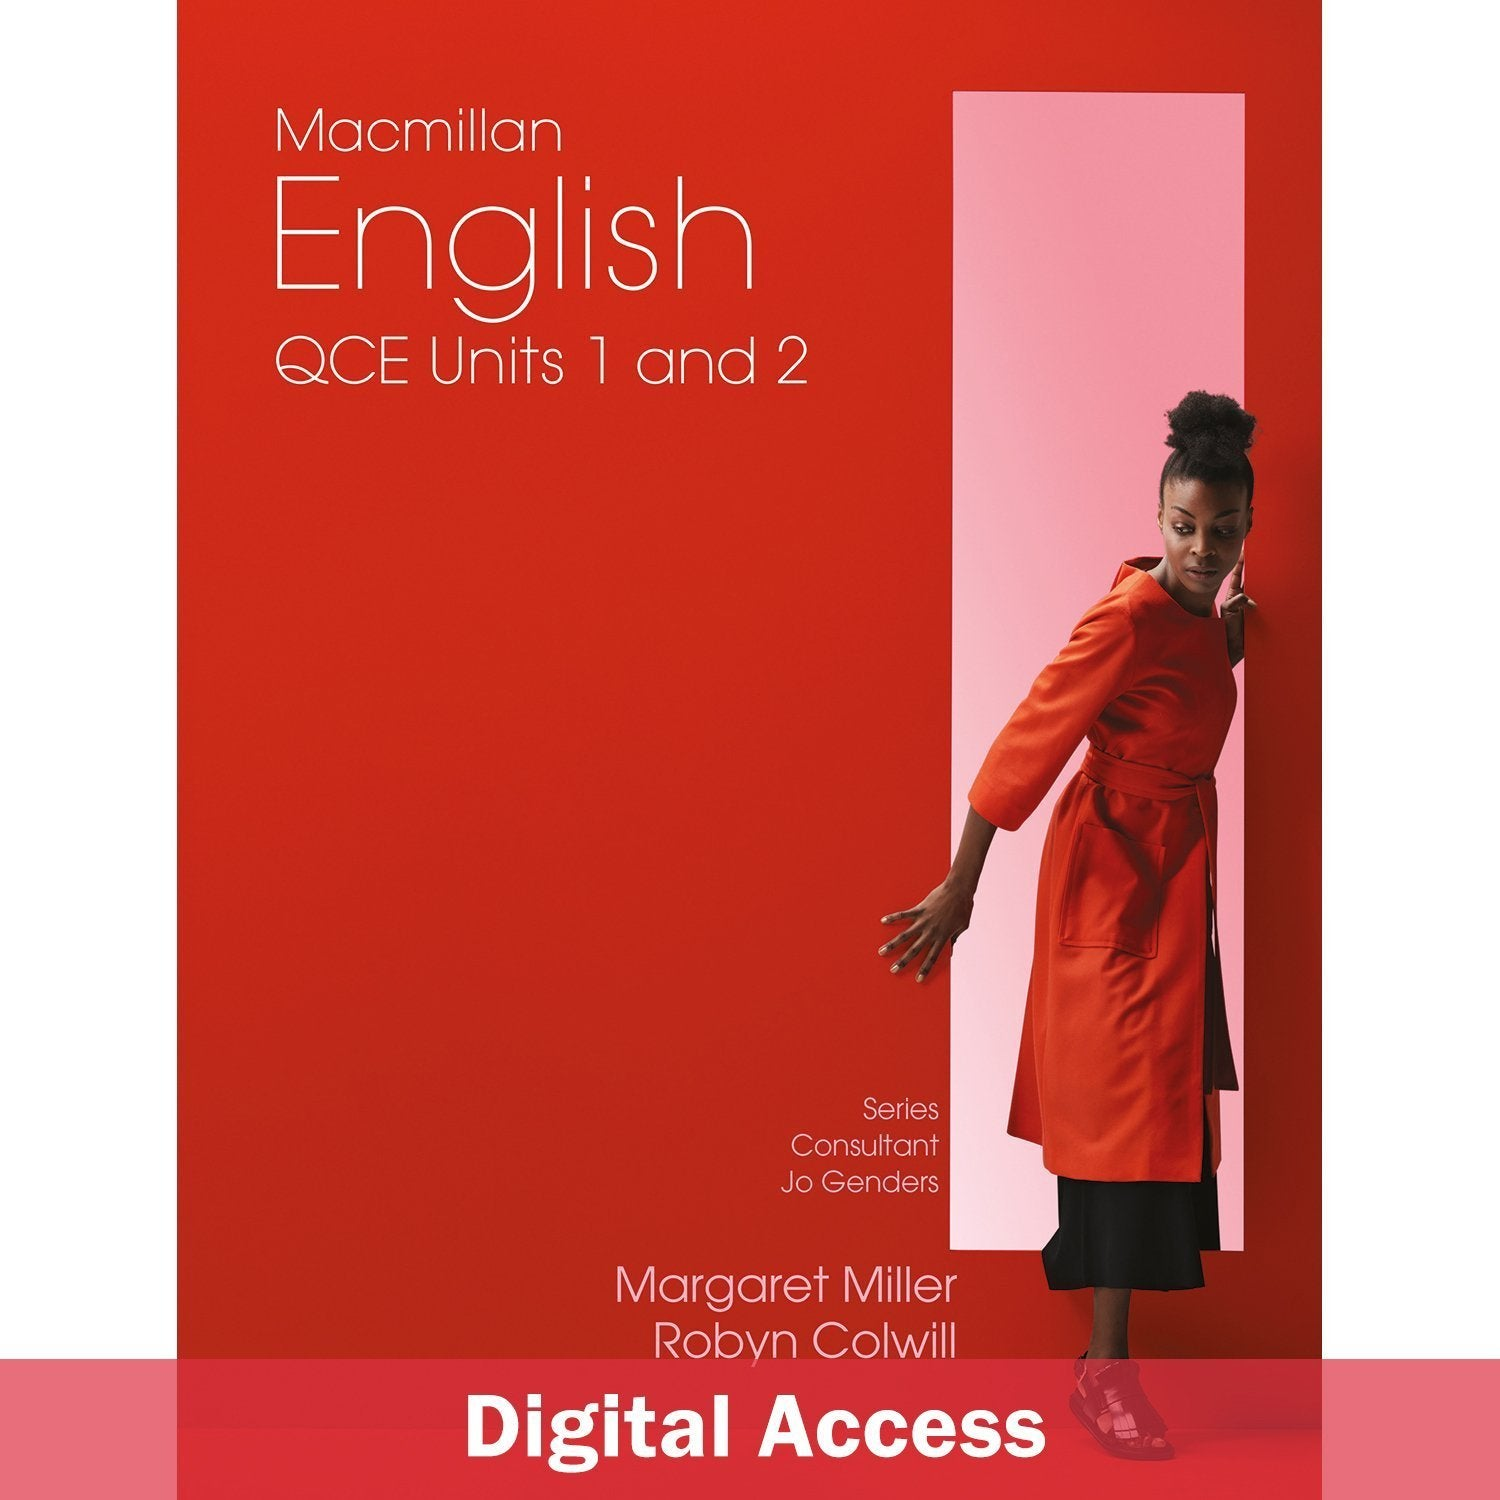 Macmillan English QCE Units 1&2 Student Digital access